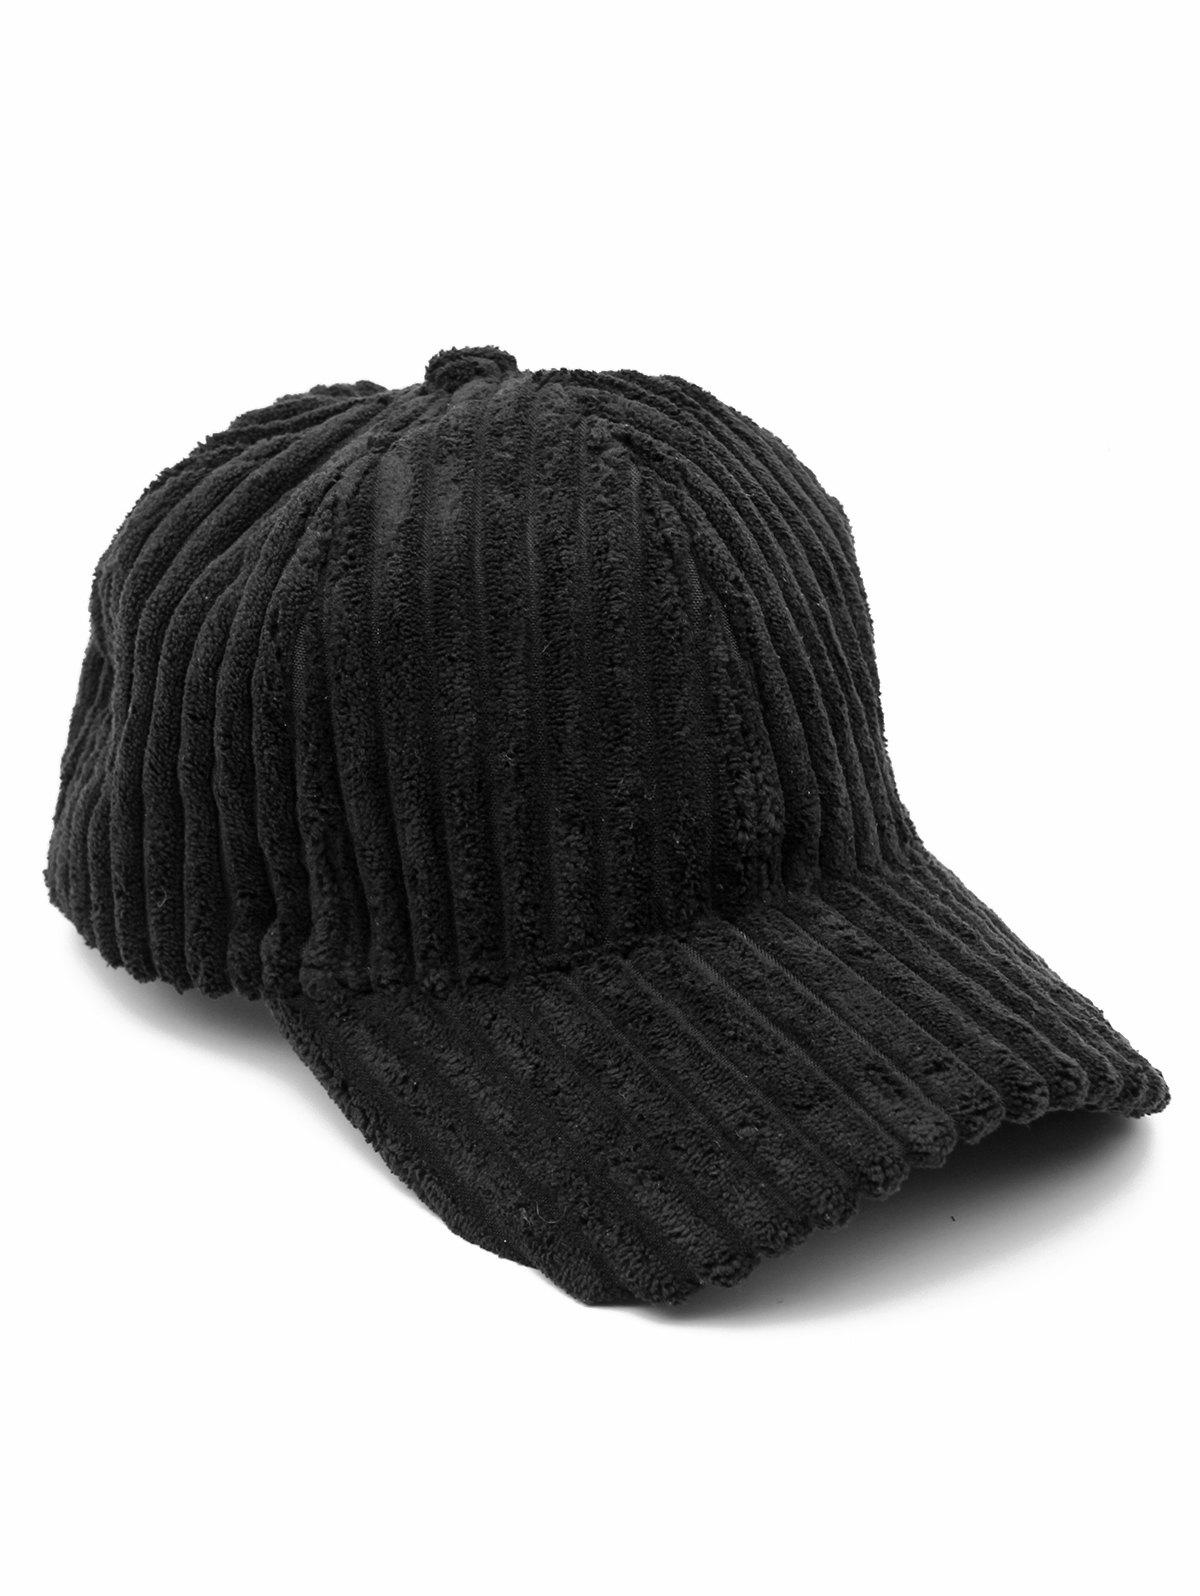 Discount Thick Striped Adjustable Baseball Cap